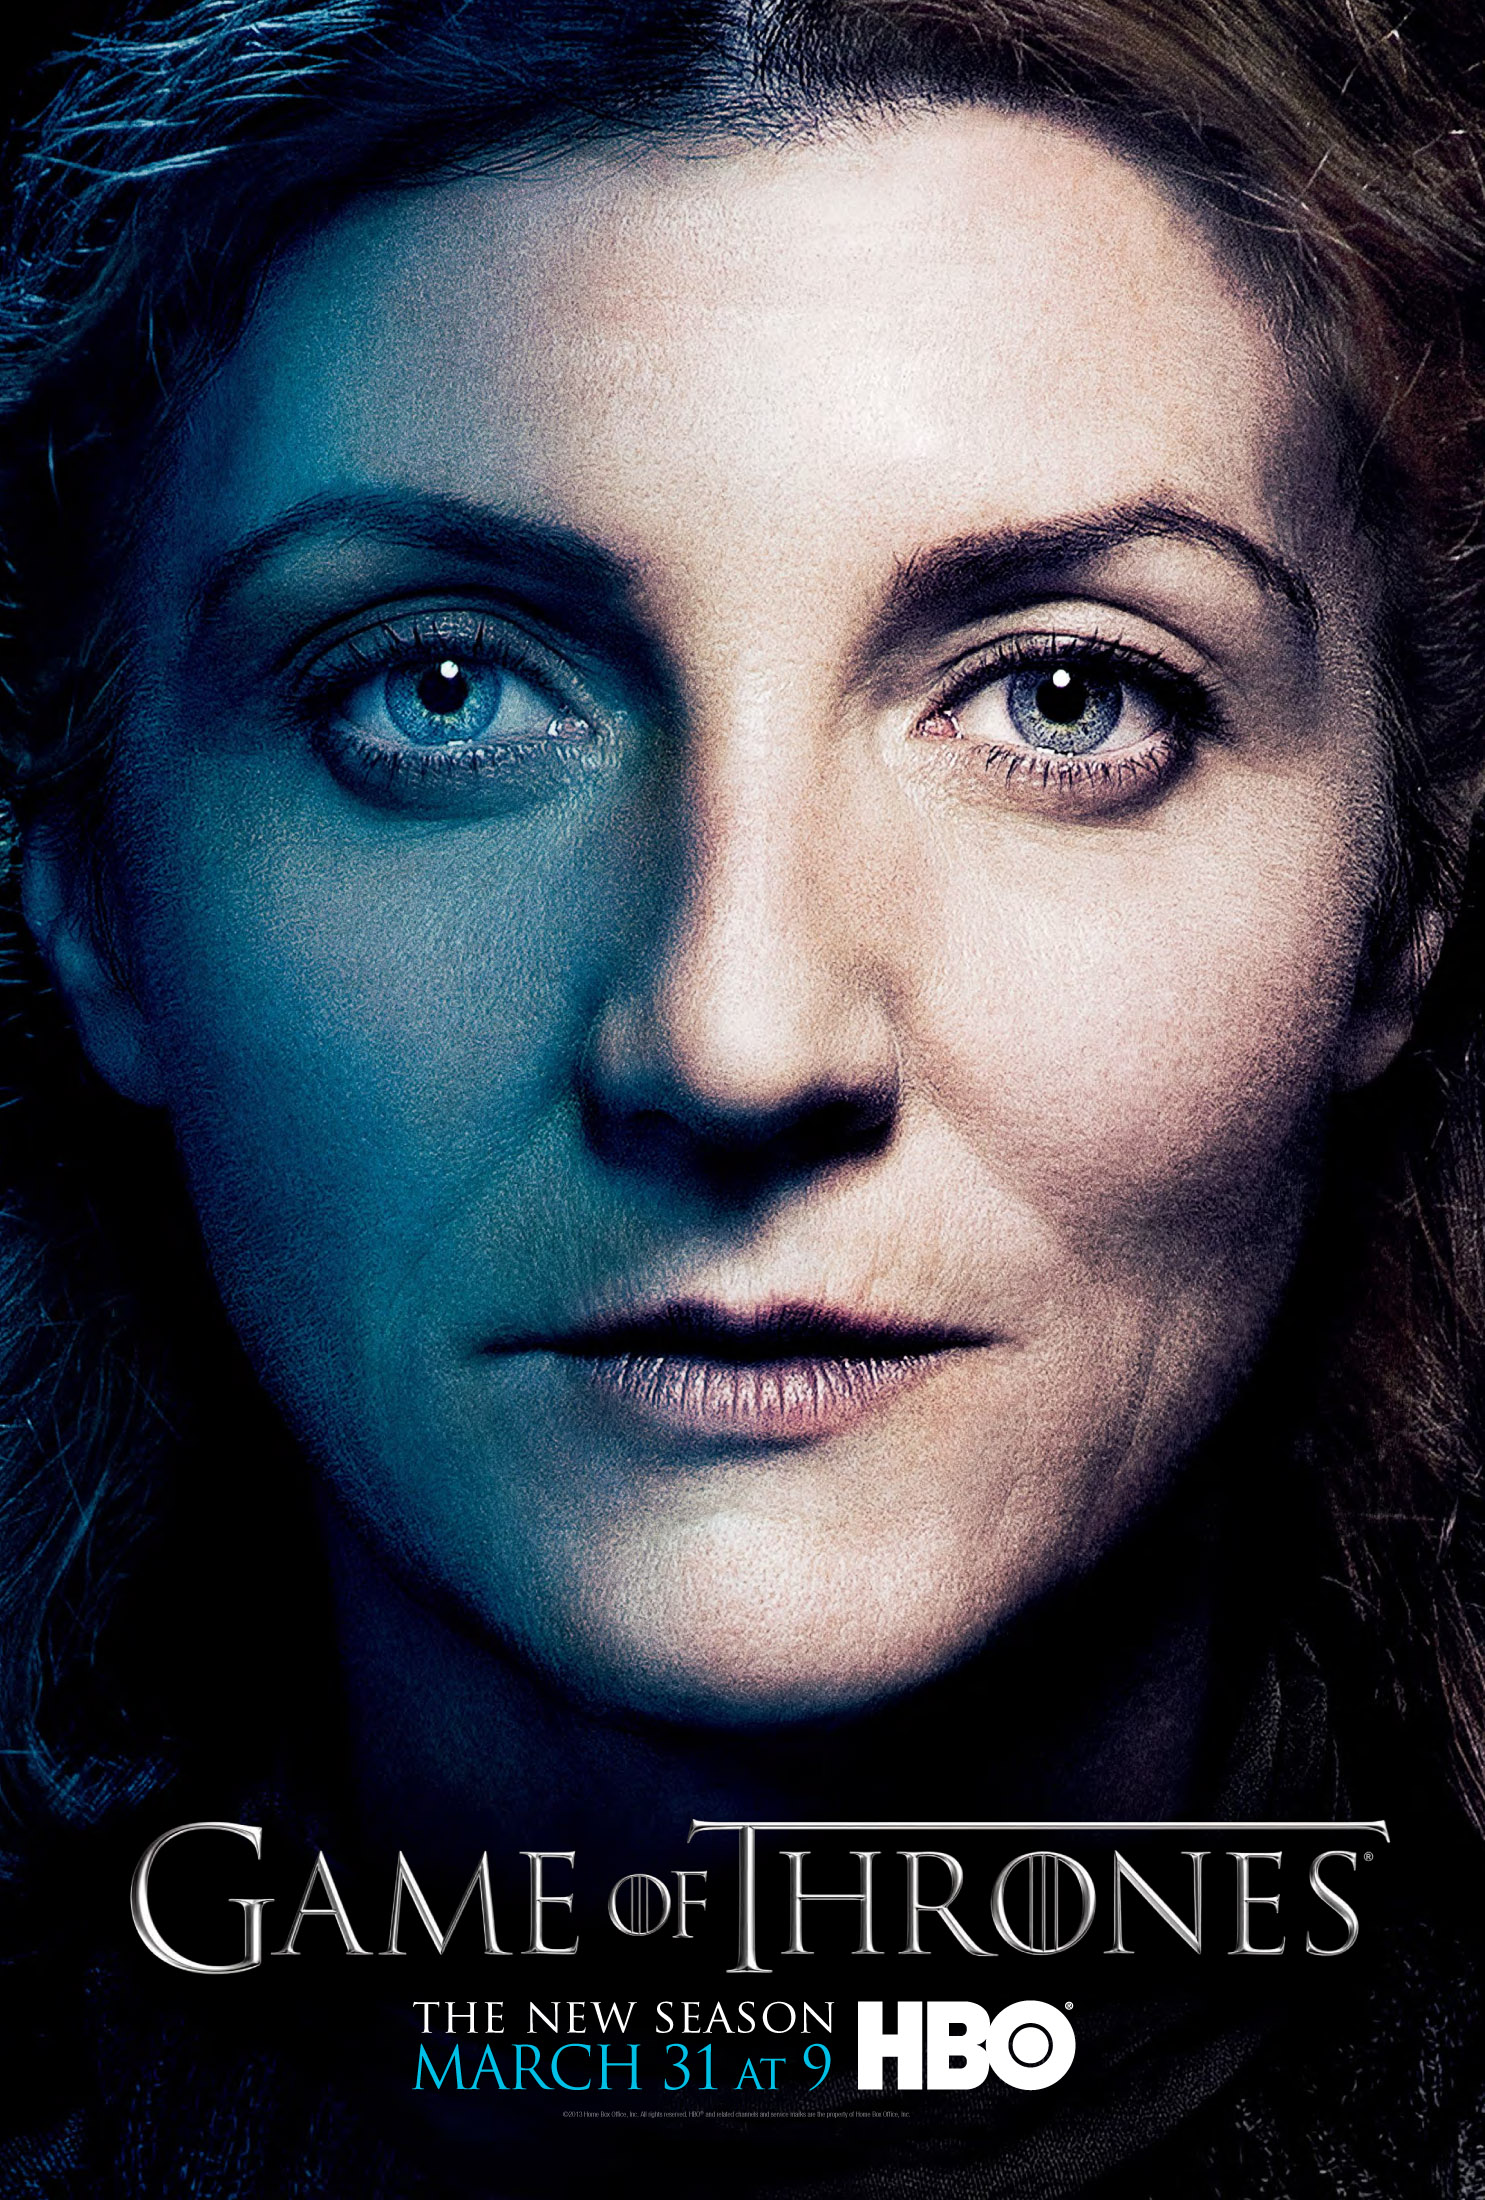 Catelyn Stark Game of Thrones season three poster.